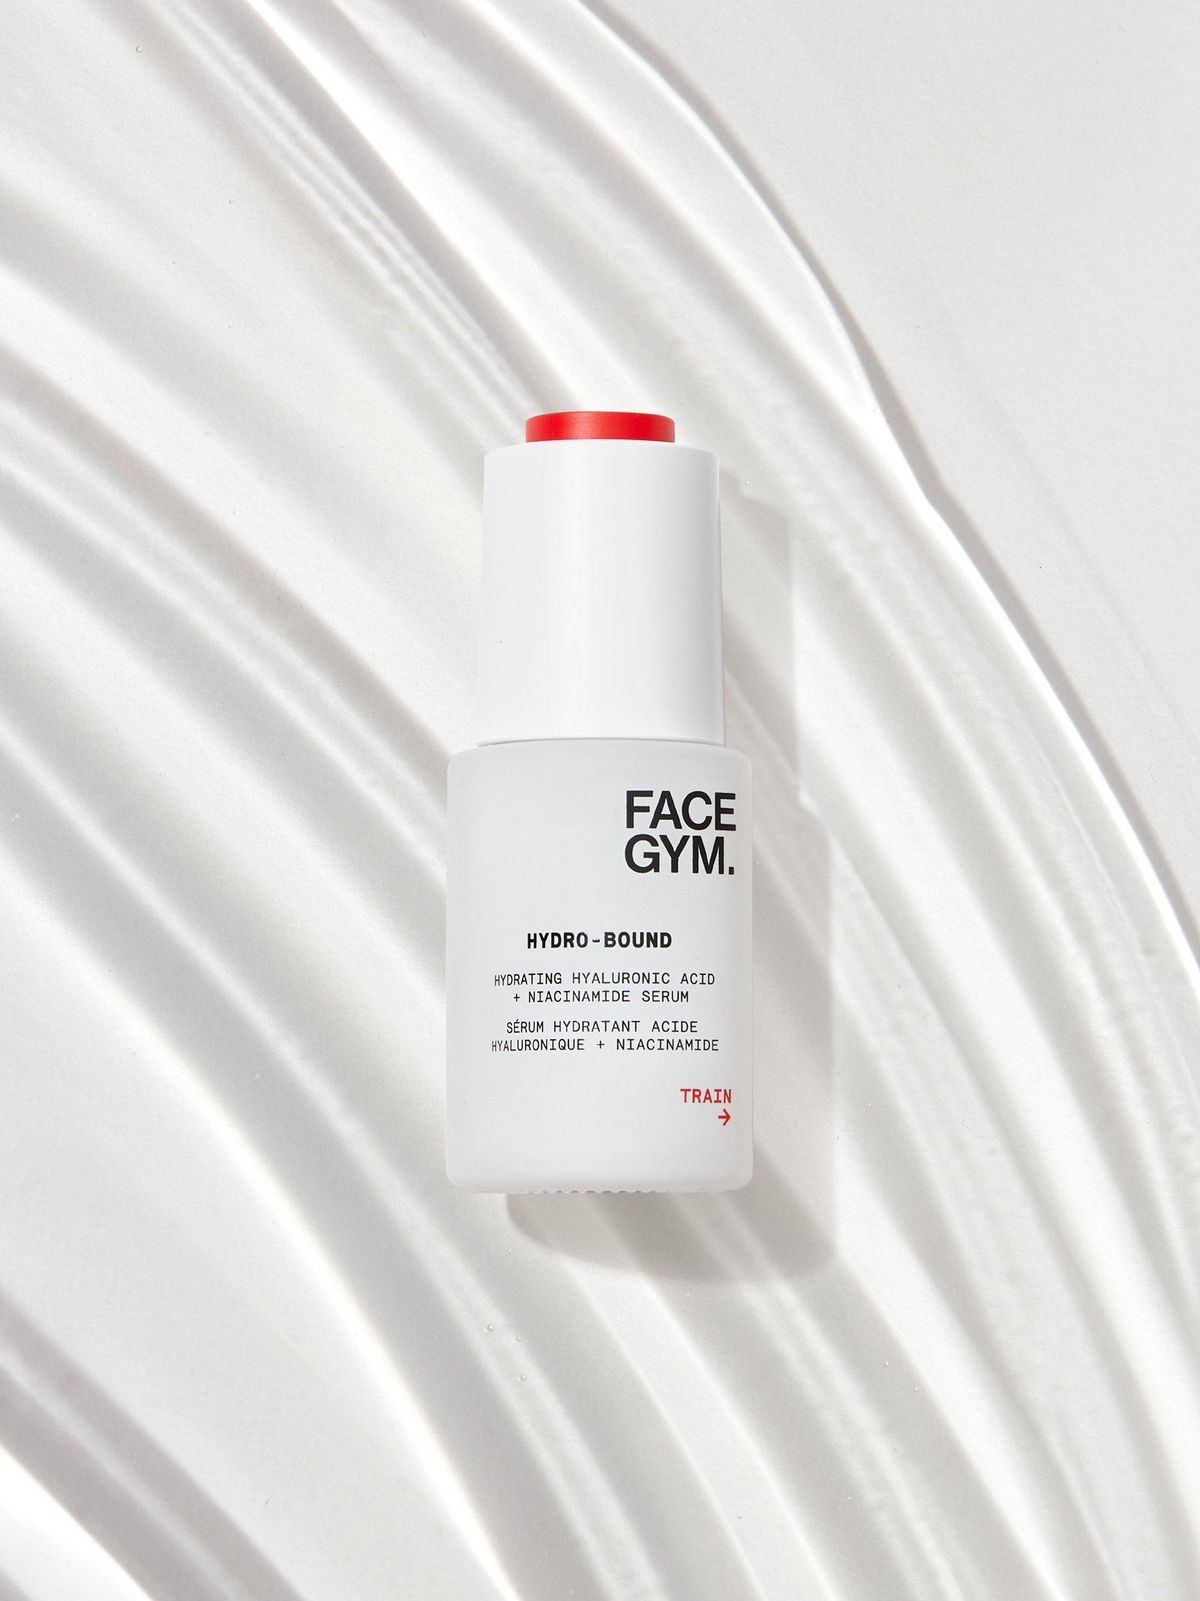 face gym hydro bound hyaluronic acid and niacninamide serum